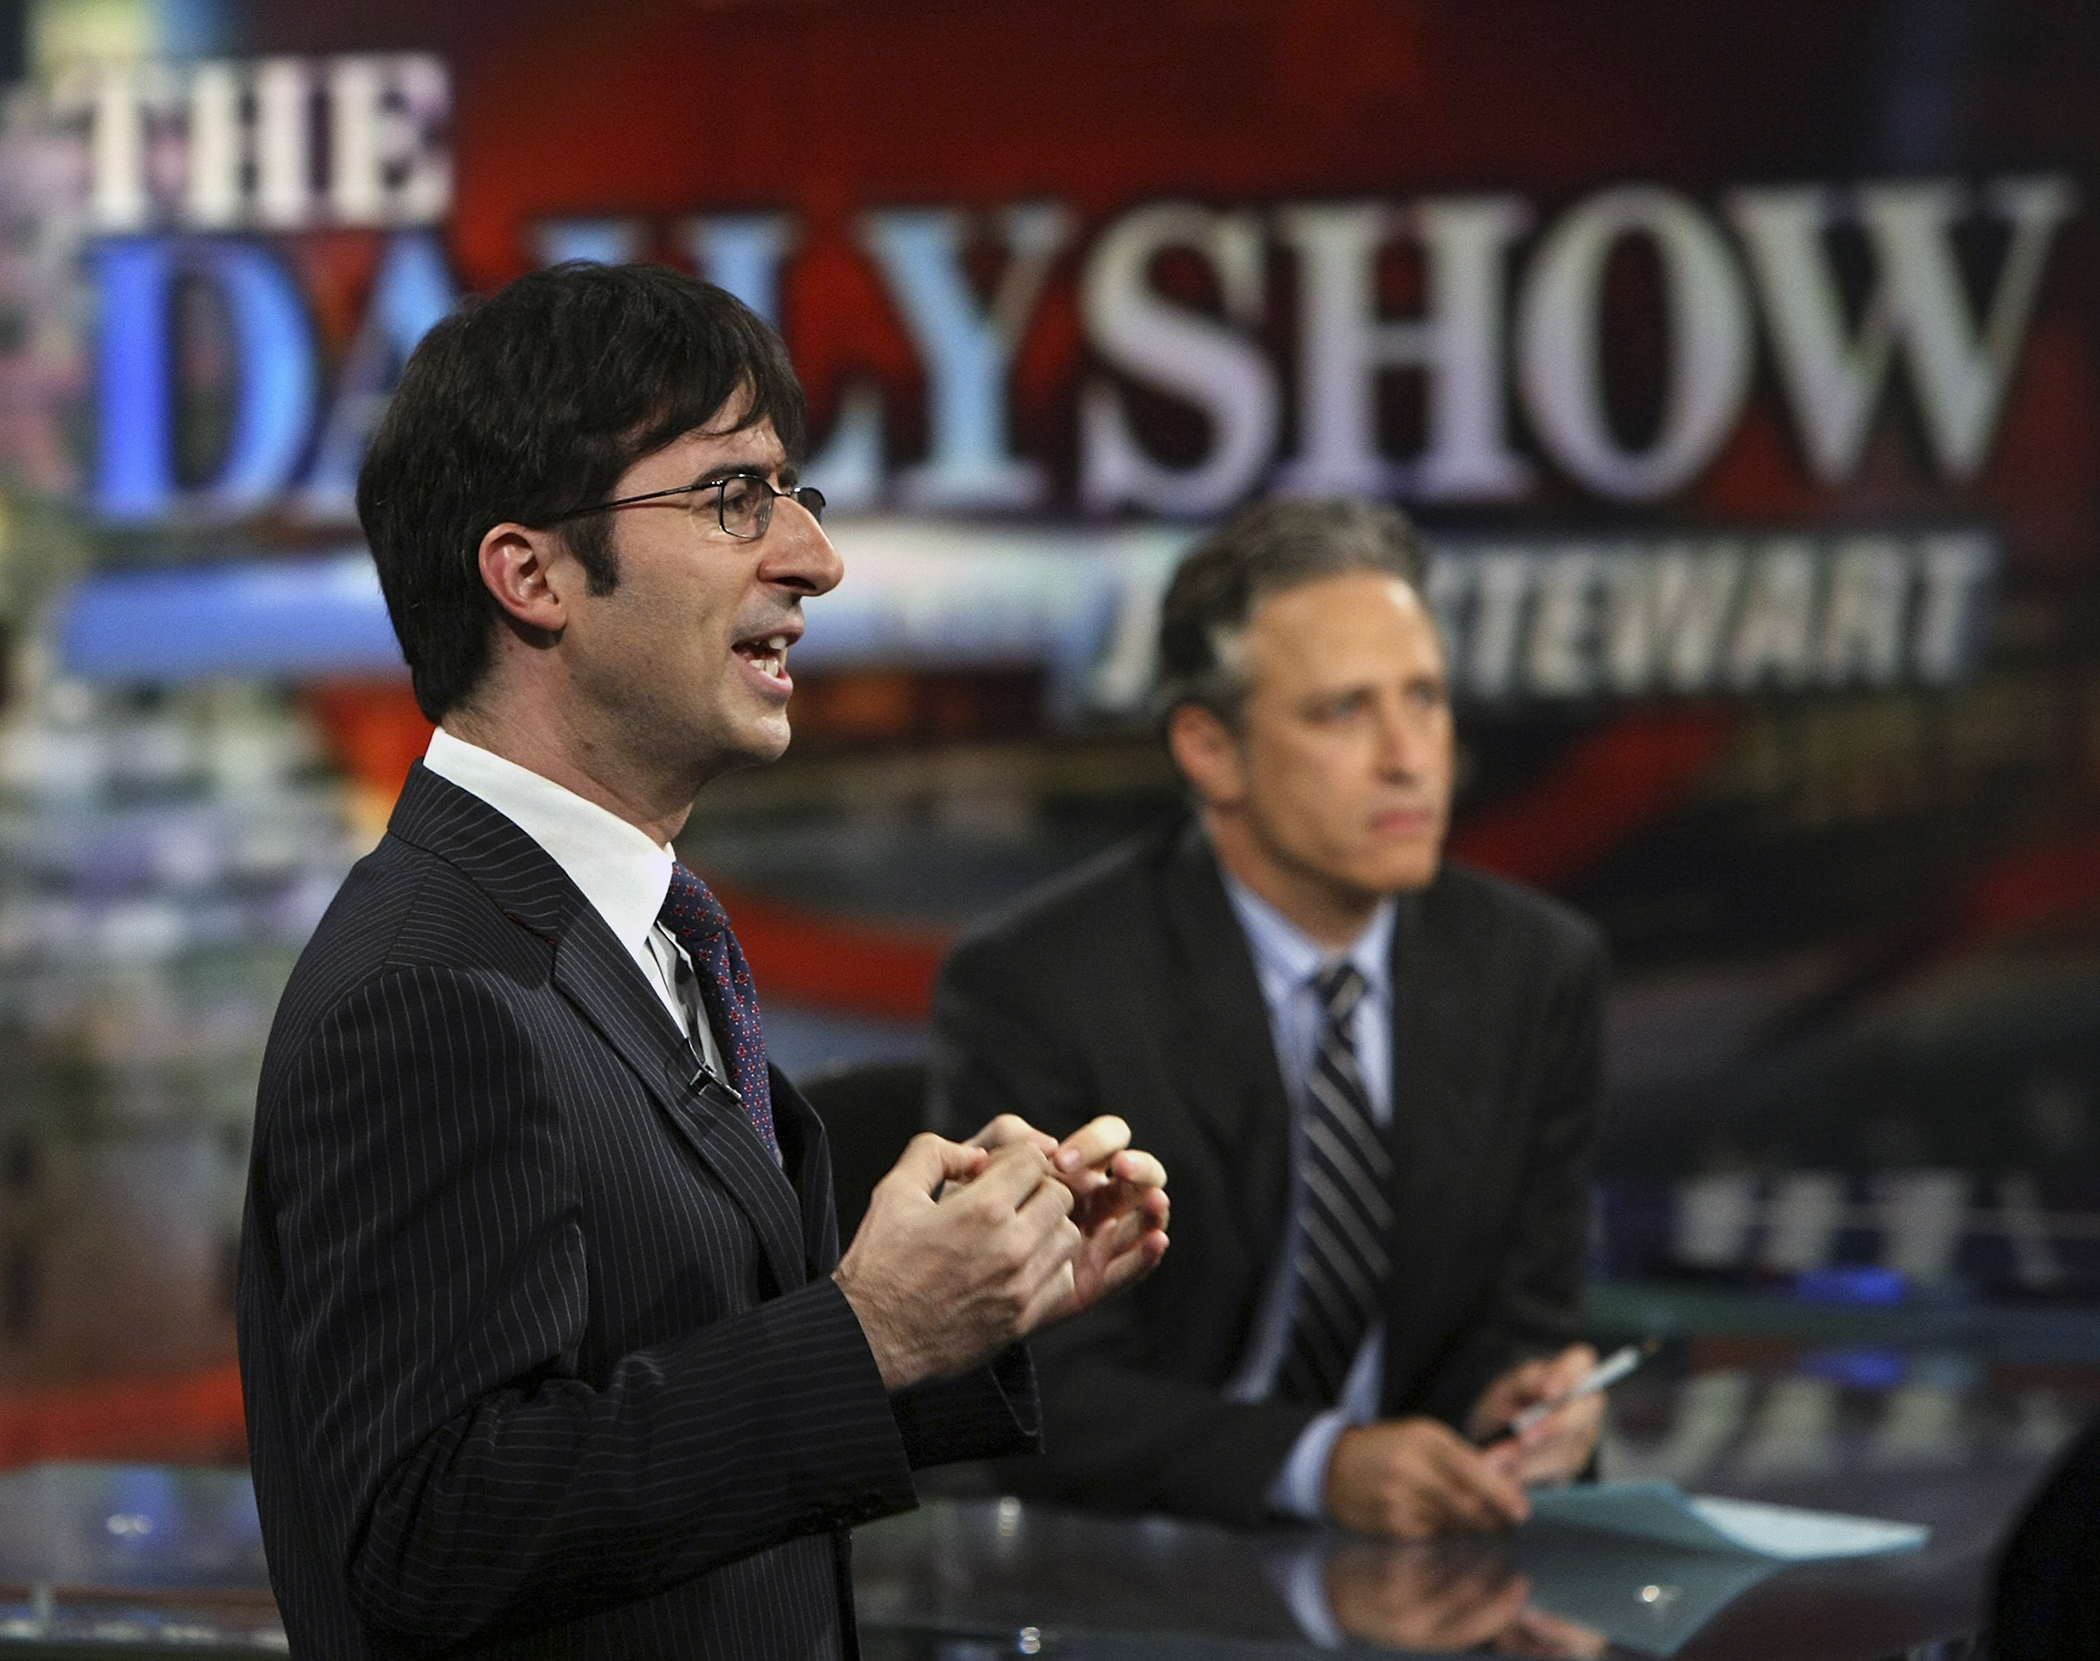 Correspondent John Oliver (L) and host Jon Stewart of Comedy Central's  The Daily Show with Jon Stewart  tape  The Daily Show with Jon Stewart: Restoring Honor & Dignity to the White House  at the McNally Smith College of Music September 3, 2008 in St. Paul, Minnesota.